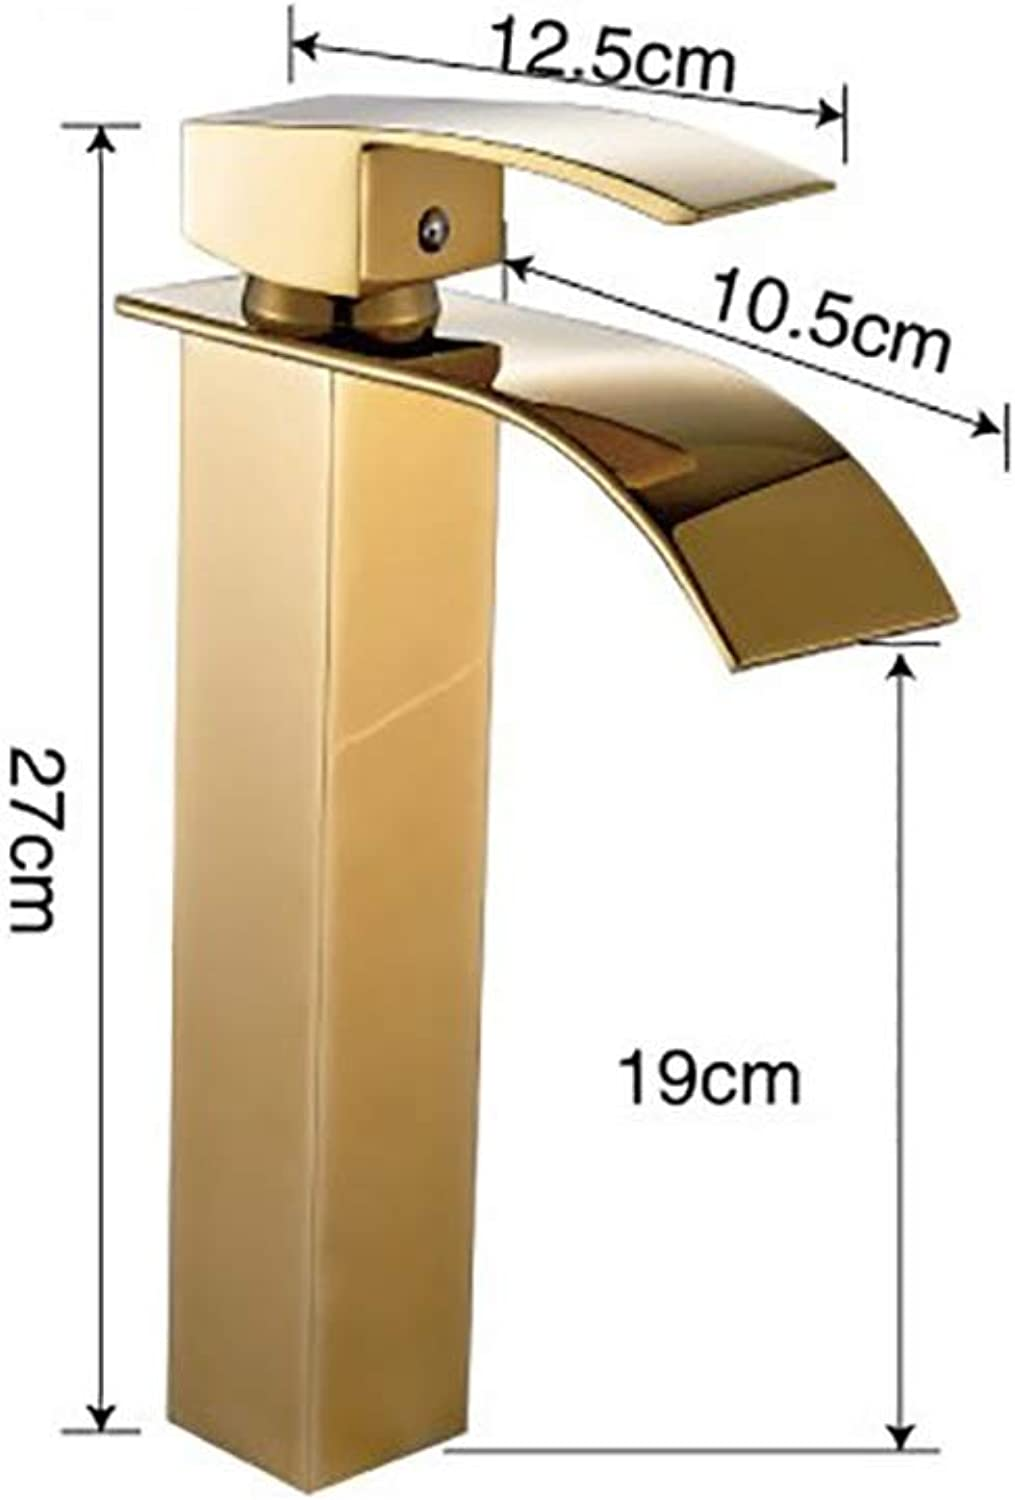 YYF-FAUCET Basin Tap Retro Waterfall Faucet All Bronze redatable Cold hot Mixing Bathroom Kitchen, Ceramic Spool (color   gold, Size   High)